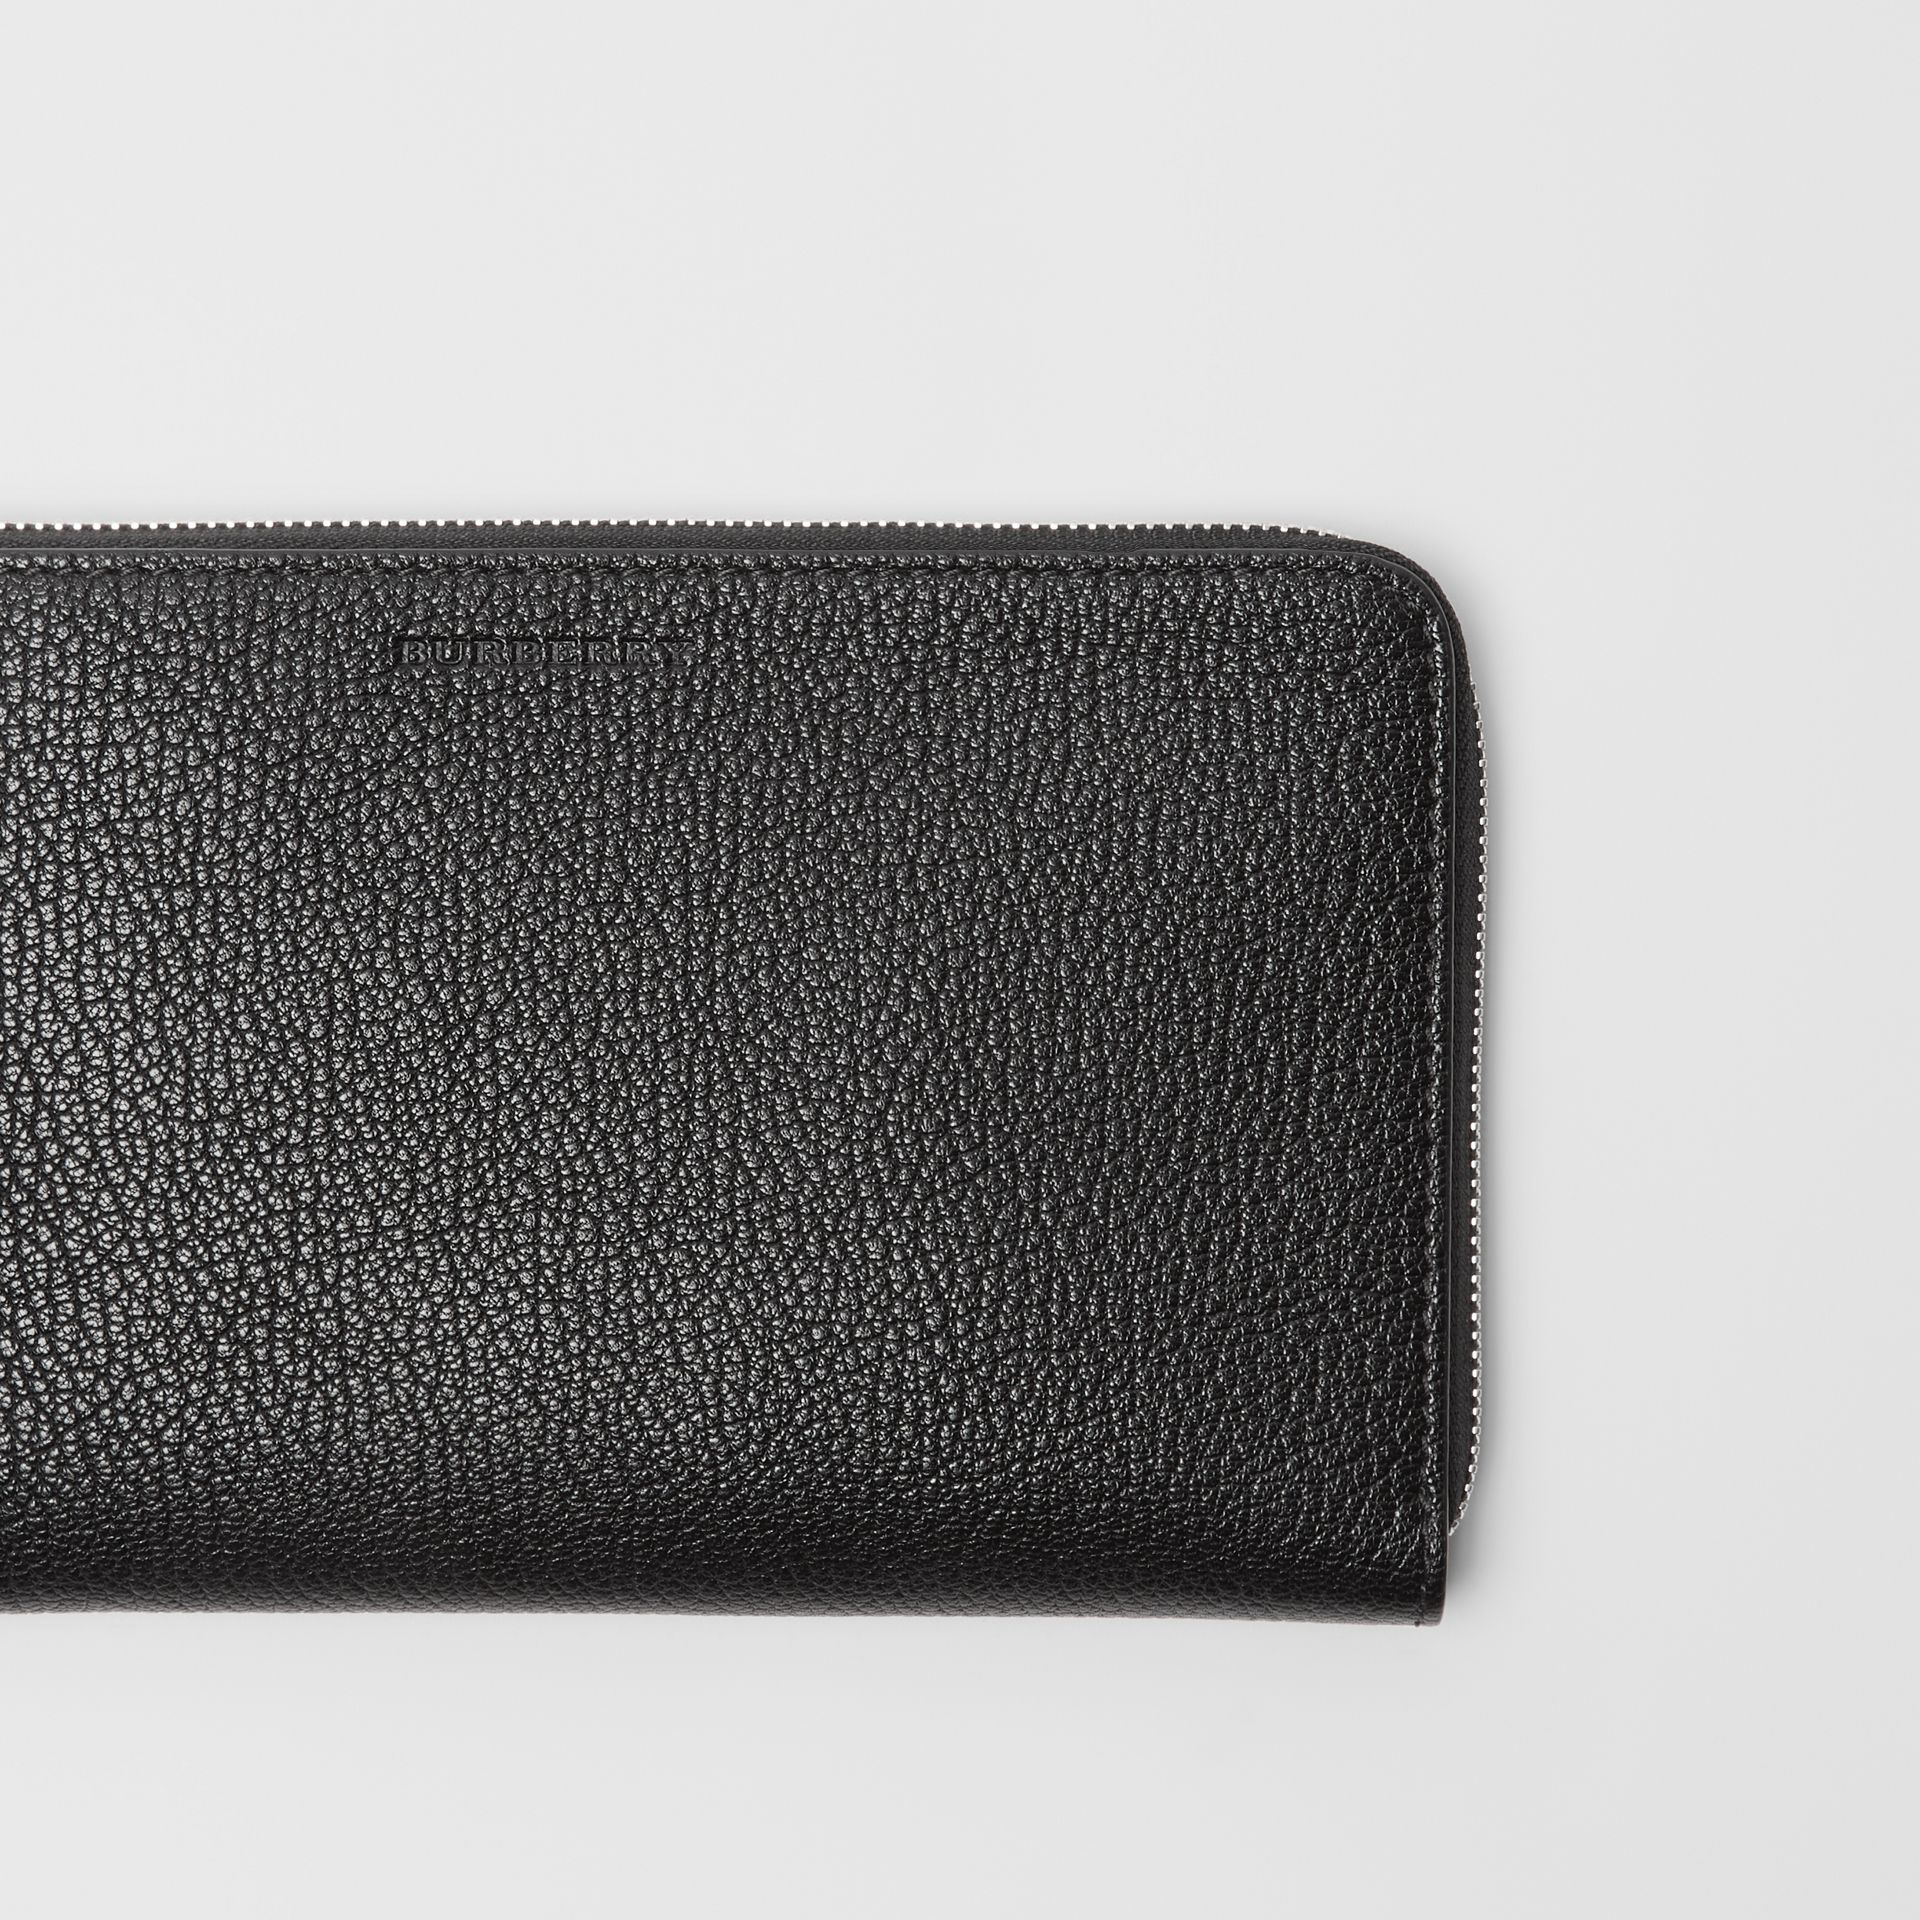 Two-tone Grainy Leather Travel Wallet in Black | Burberry - gallery image 1